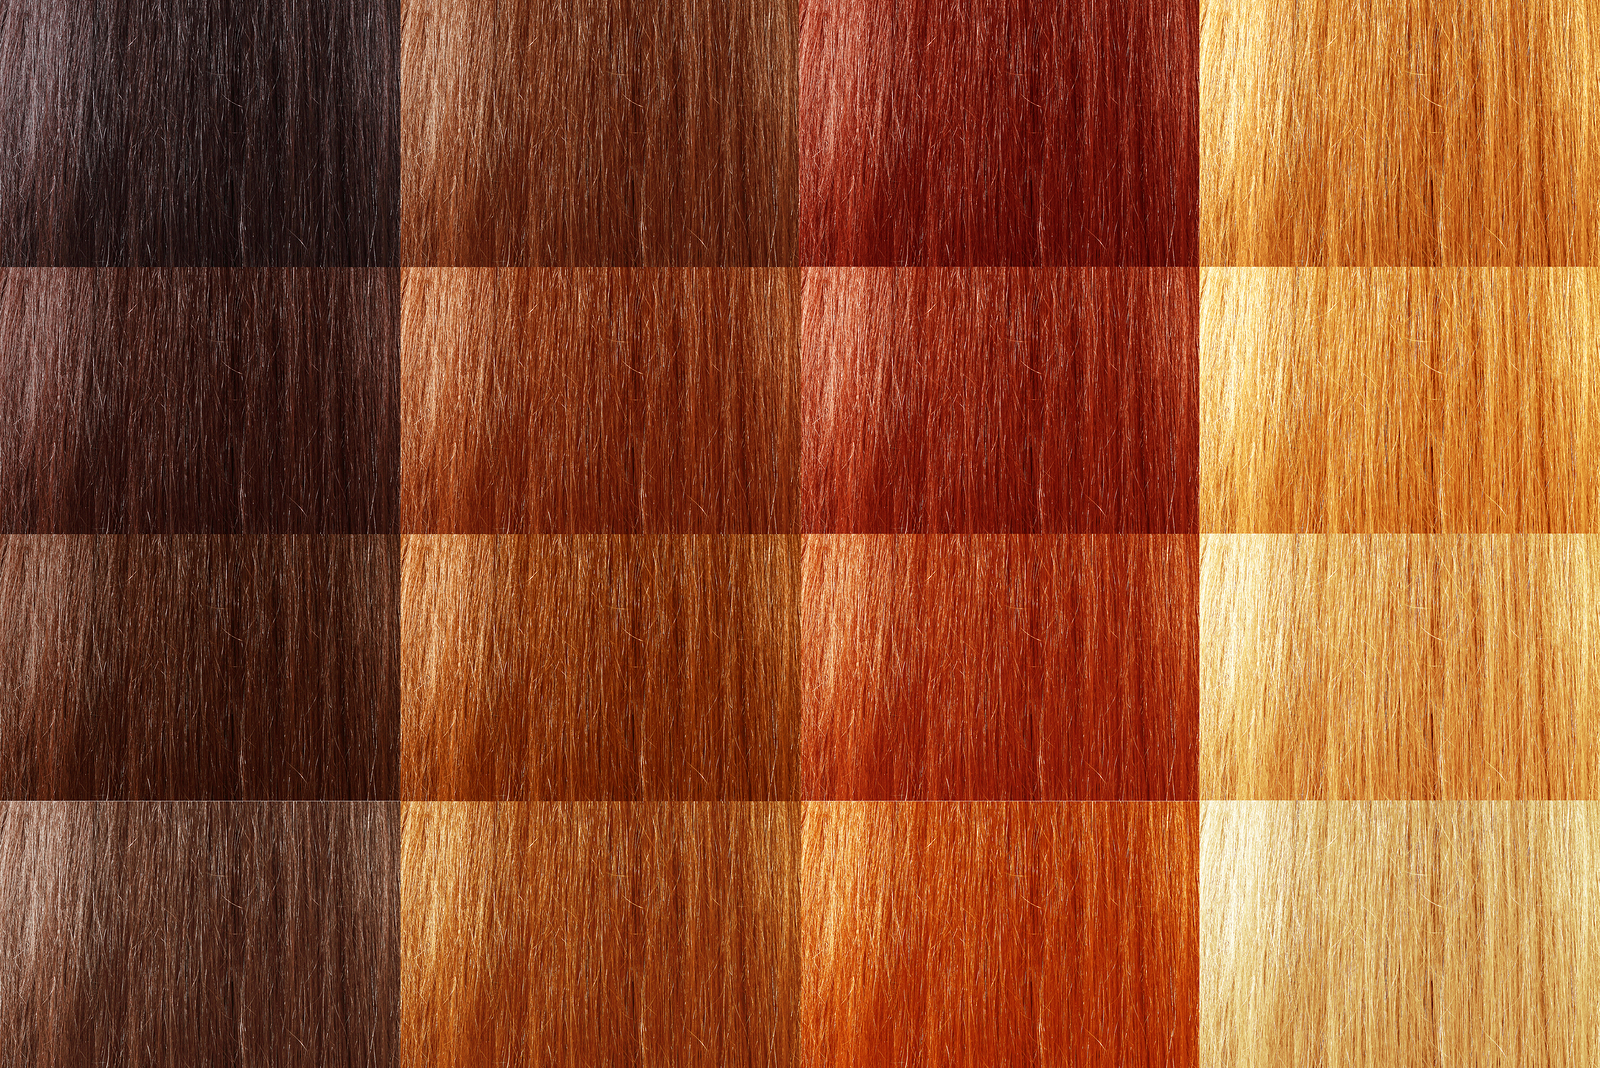 Exactly How To Pick The Best Hair Color For Your Skin